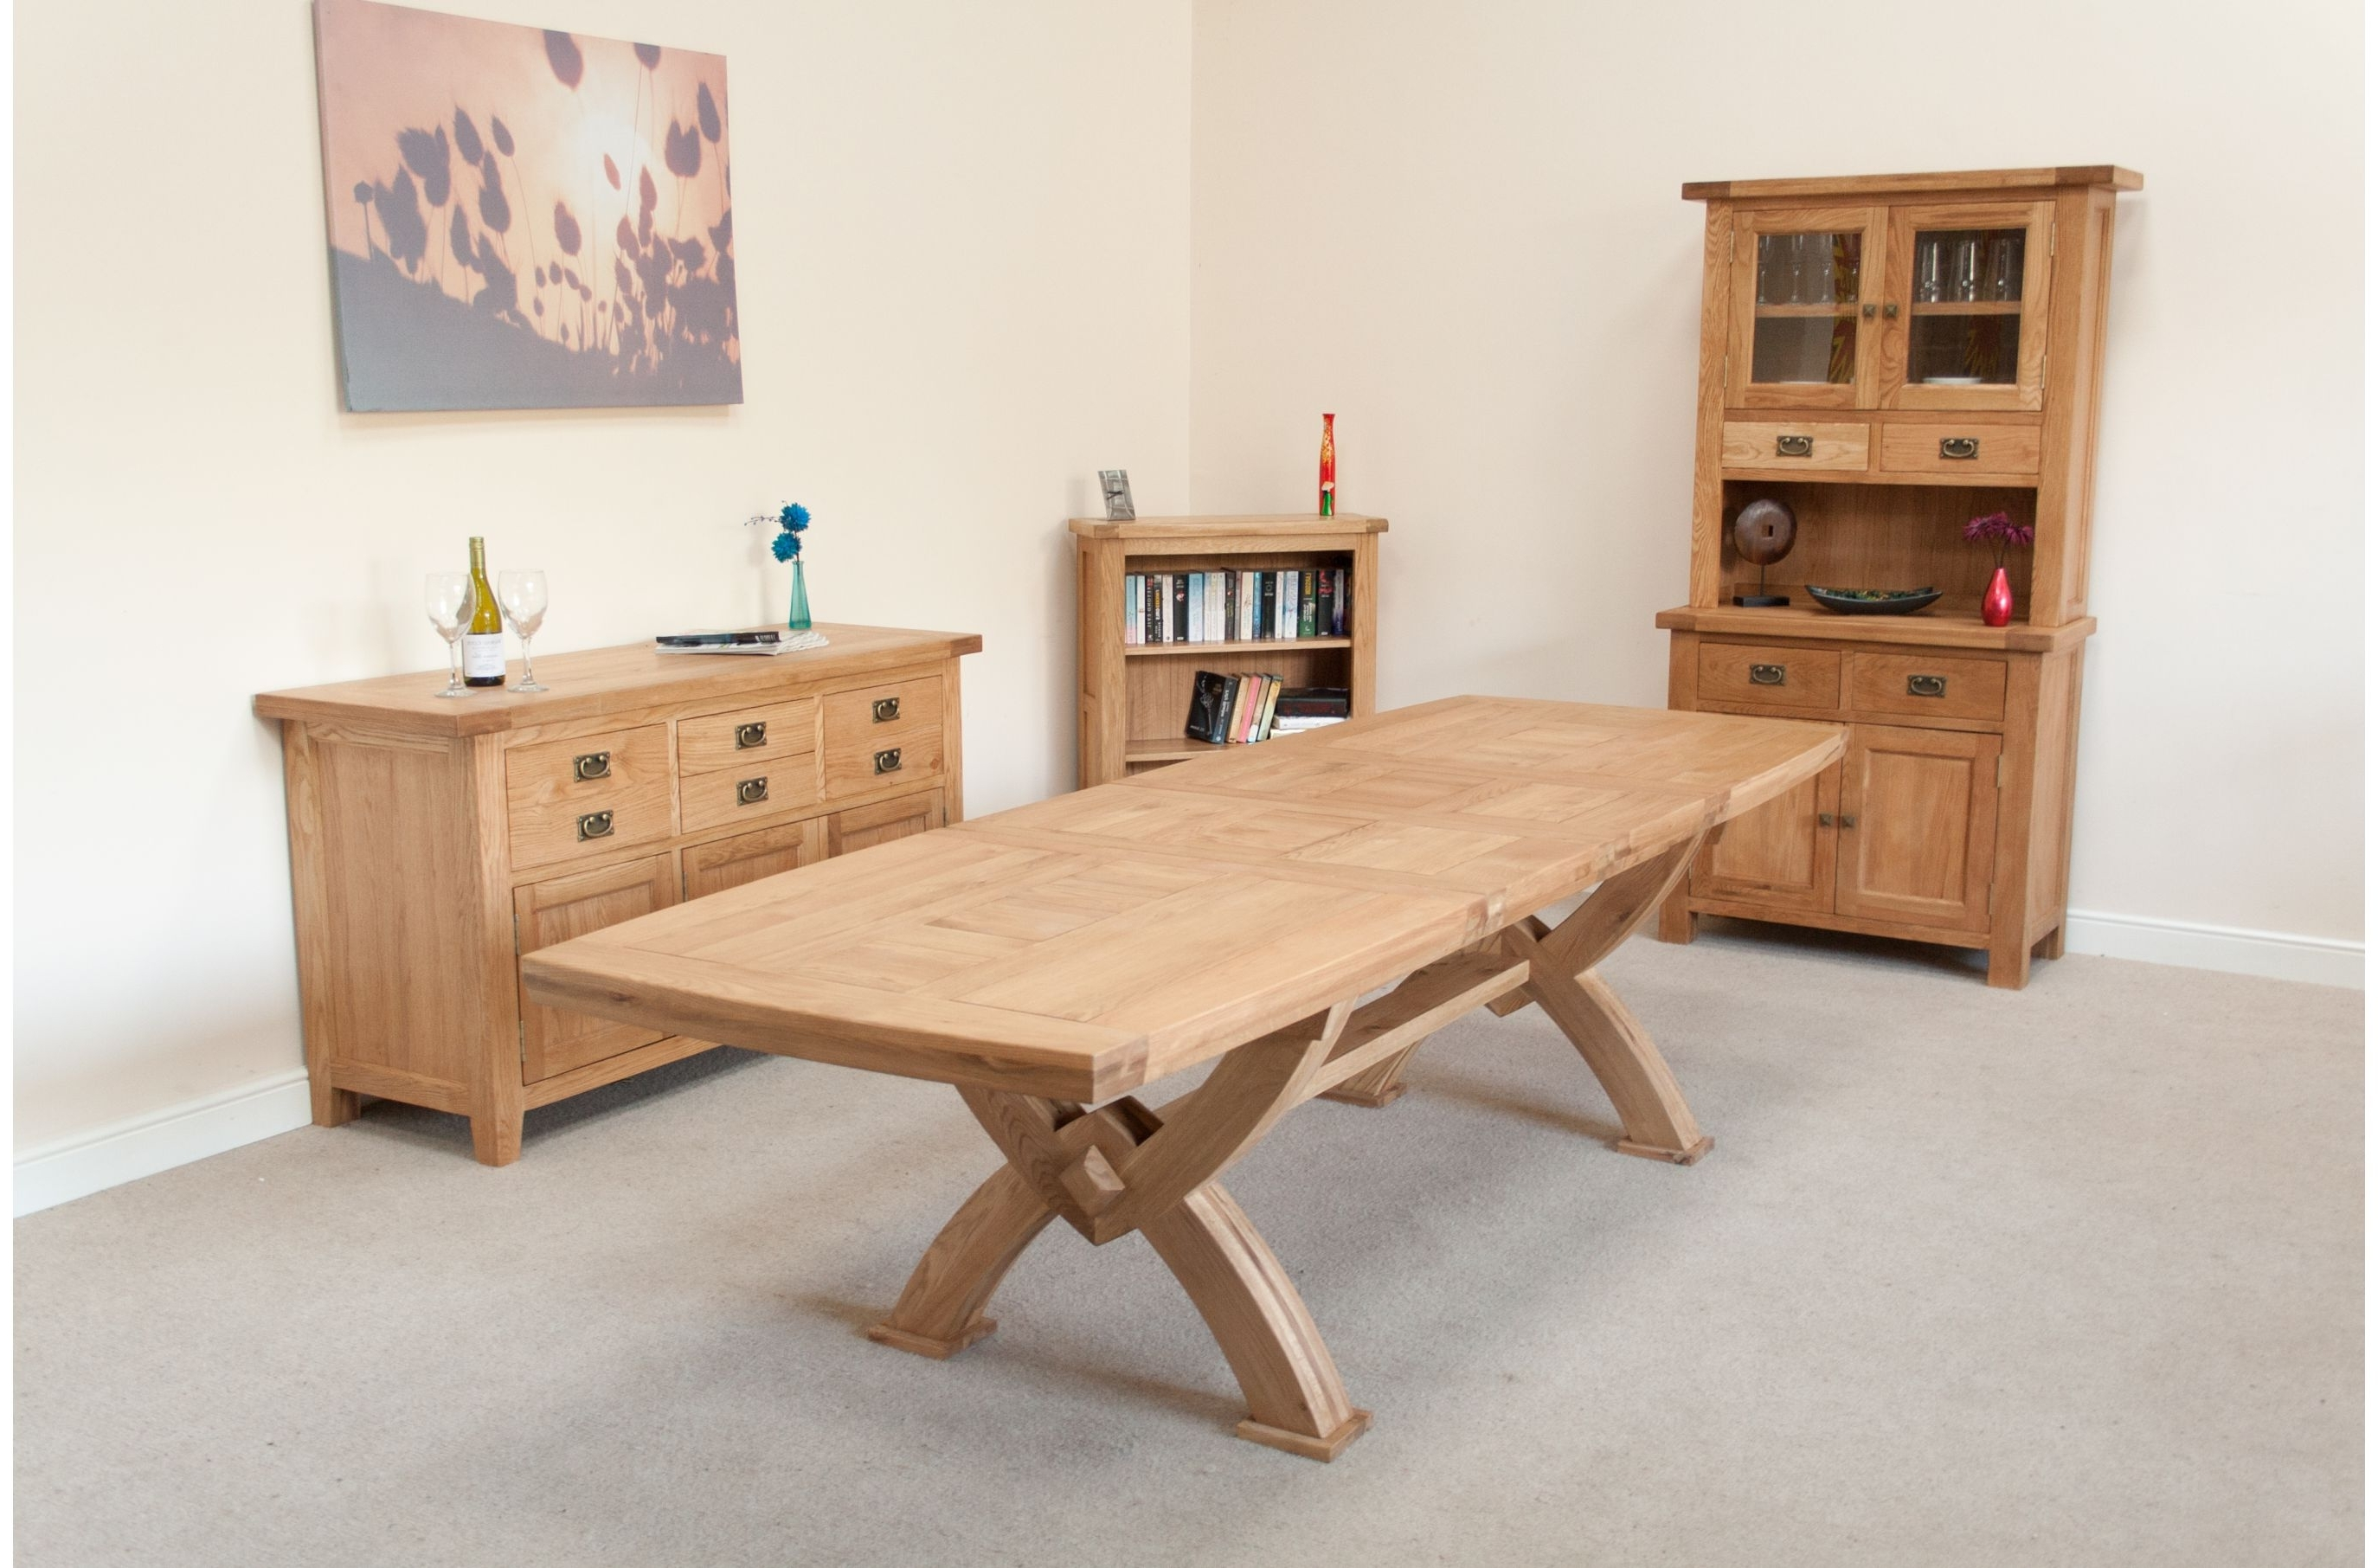 Huge Big Tables Intended For Current Oak 6 Seater Dining Tables (View 12 of 25)